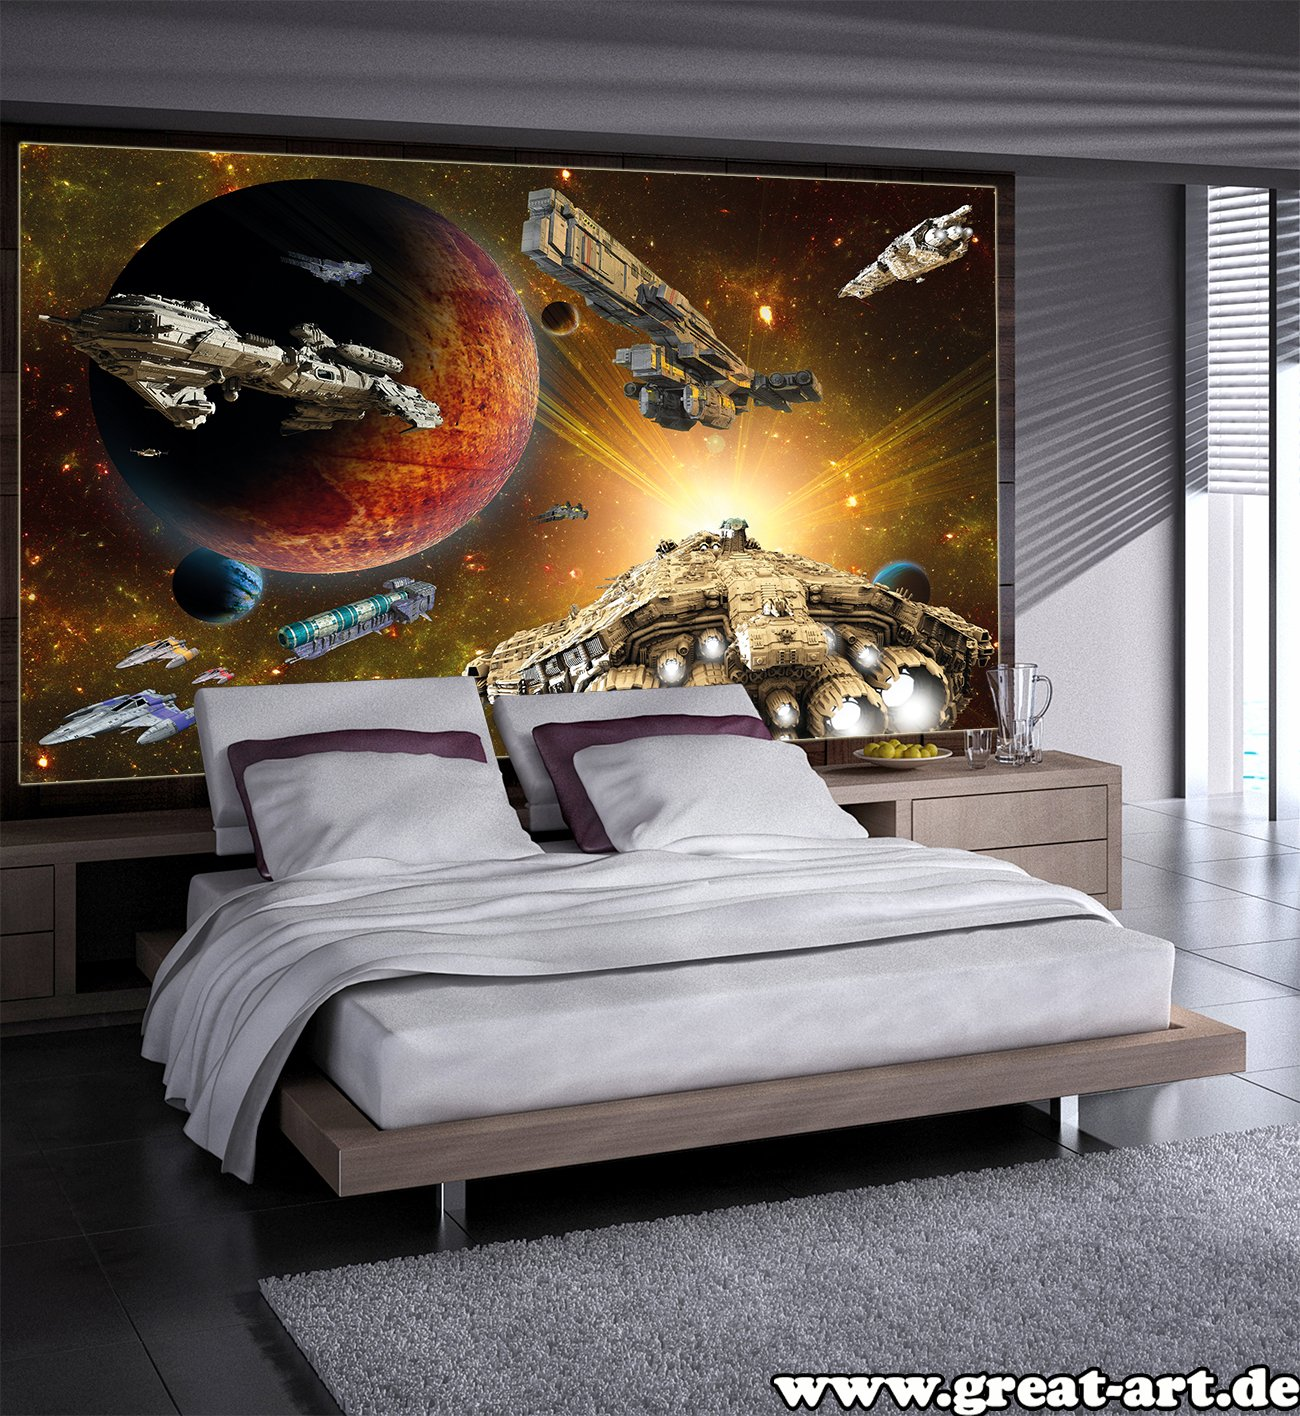 Space Bedroom Wallpaper Wallpaper Galaxy Adventure Wall Picture Decoration Space Flight